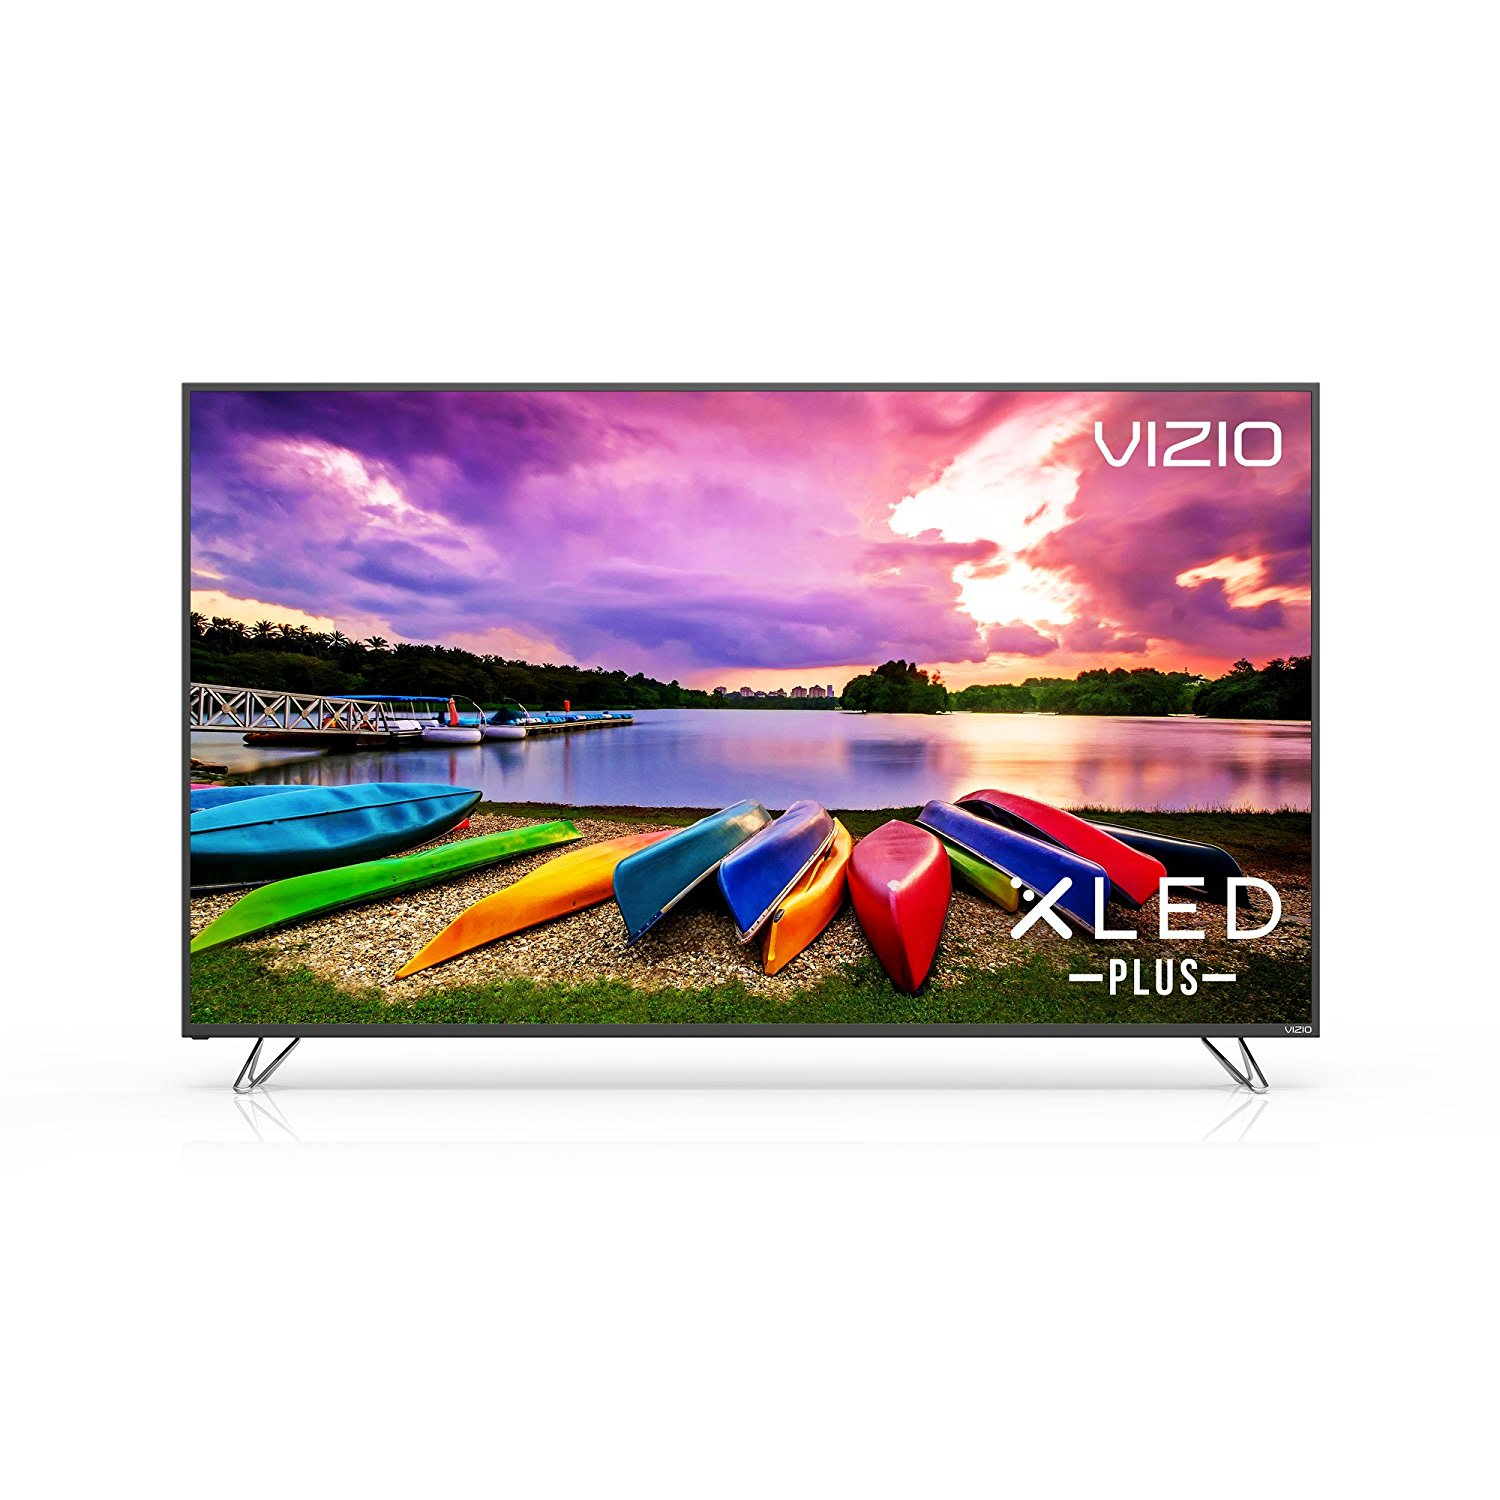 An image of VIZIO M-Series M75-E1 75-Inch HDR 4K XLED 120Hz TV with VIZIO Clear Action 360